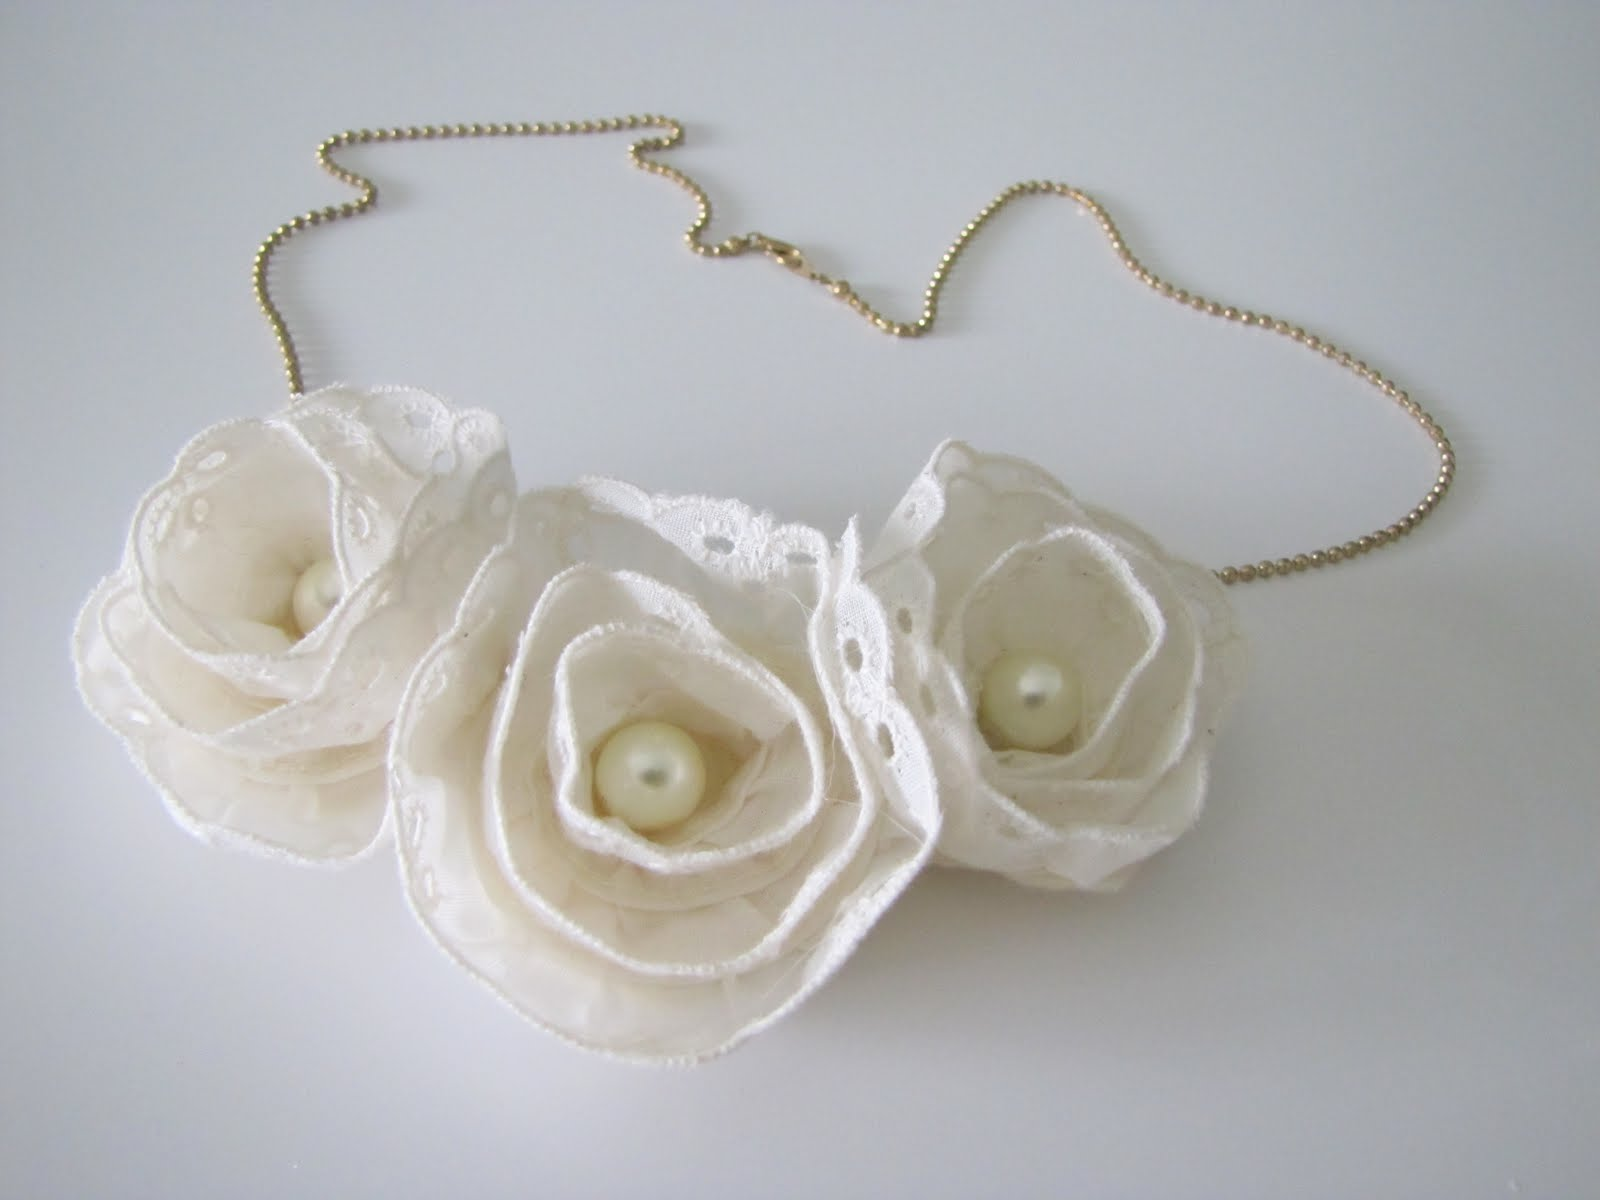 Anthropologie Lace Flower Necklace Diy Craft Little Miss Momma